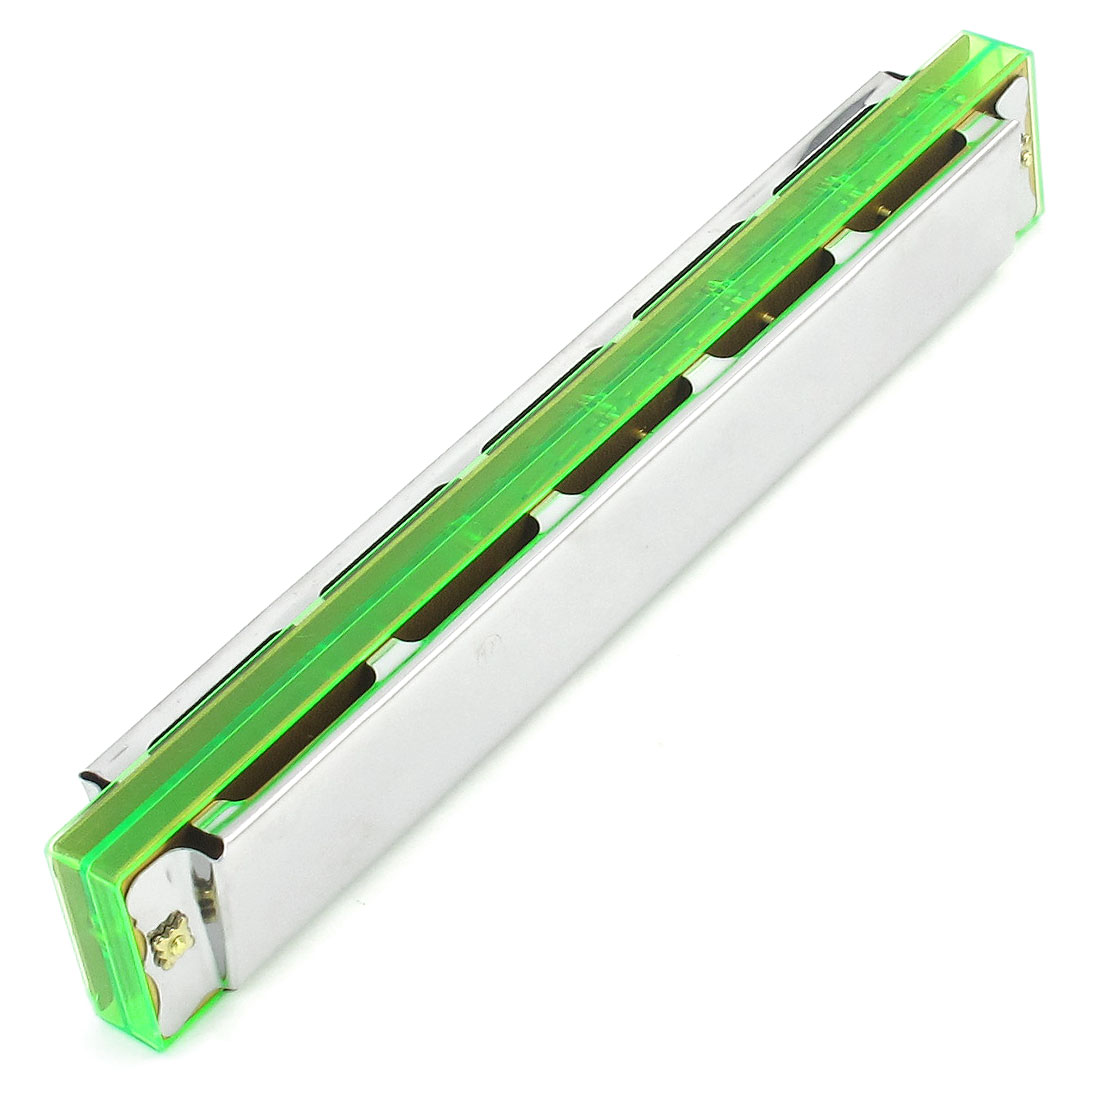 "6.9"" Long 48 Holes Silver Tone Harmonica Mouth Organ w Case Green"